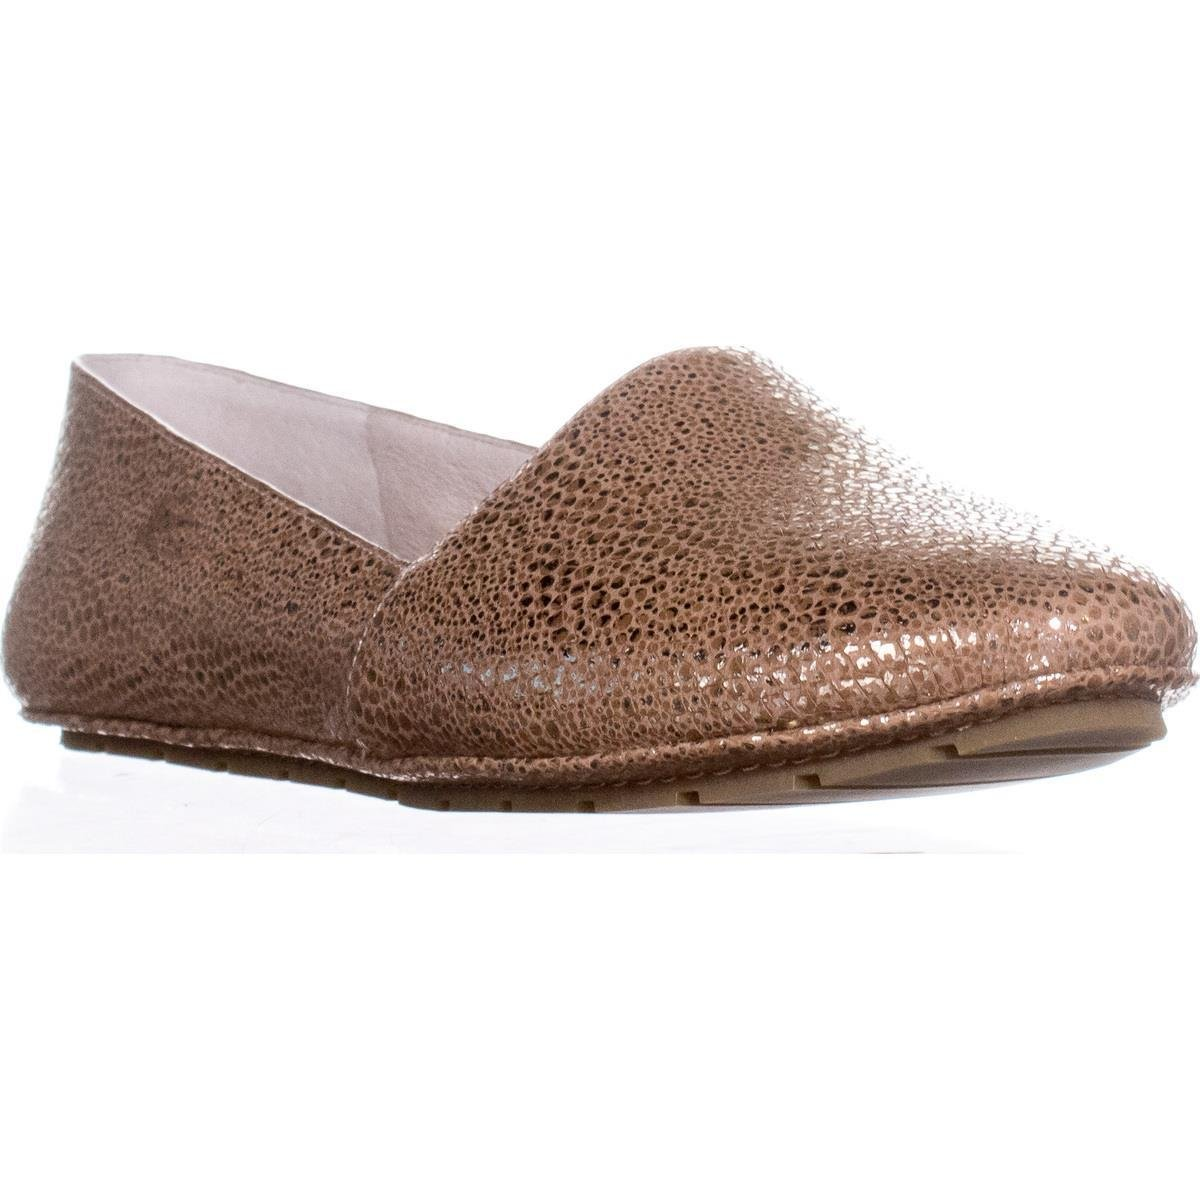 Kenneth Cole New York Women's Jayden Moccasin B01CGX21IW 9.5 B(M) US|Rose Gold